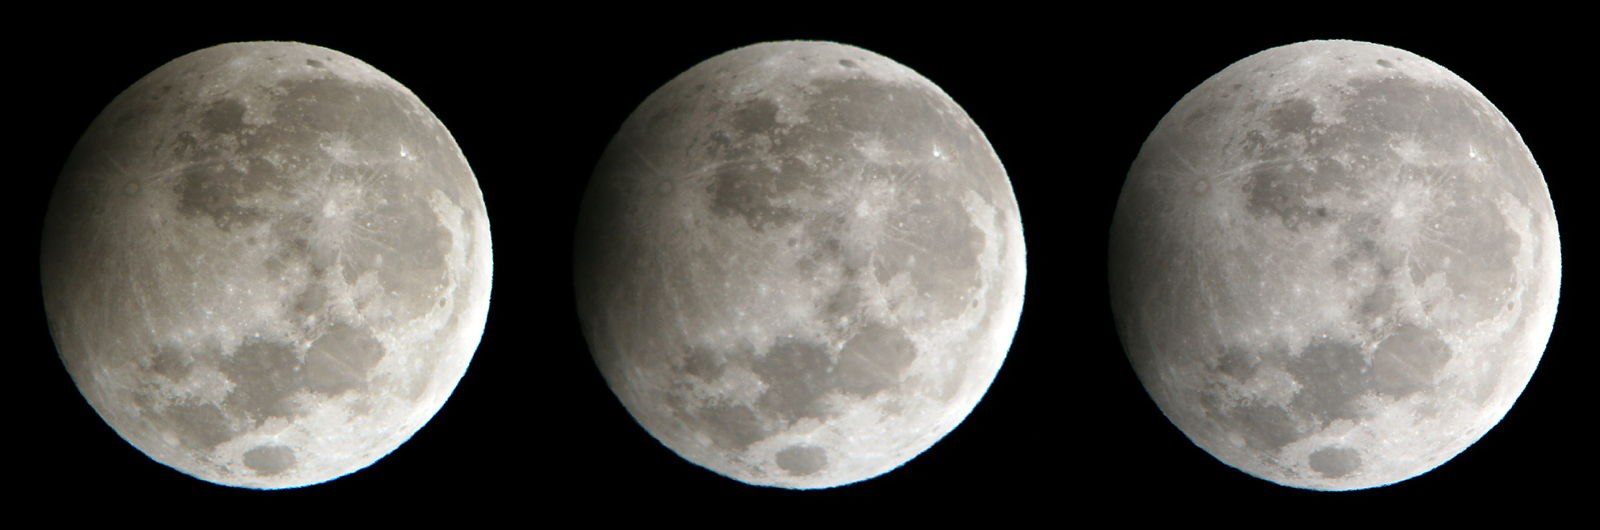 The Penumbral Lunar Eclipse of 2006